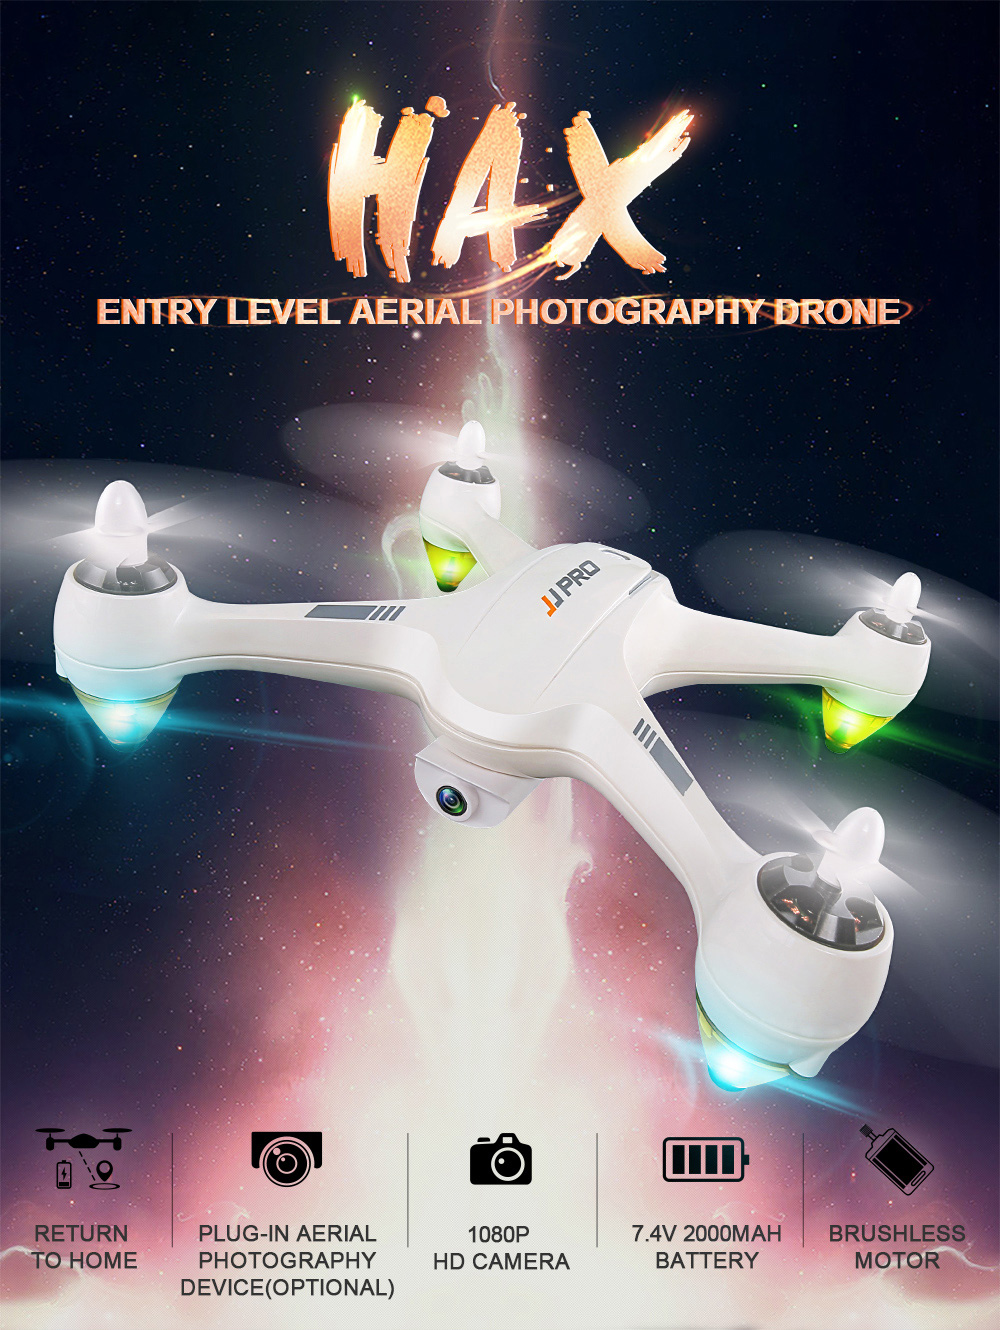 DRON JJRC JJPRO X3 HAX WIFI FPV - bijela - image JJRC-JJPRO-X3-HAX-WIFI-FPV-Brushless-RC-Quadcopter-RTF-White-20171207103430502 on https://smartmall.hr